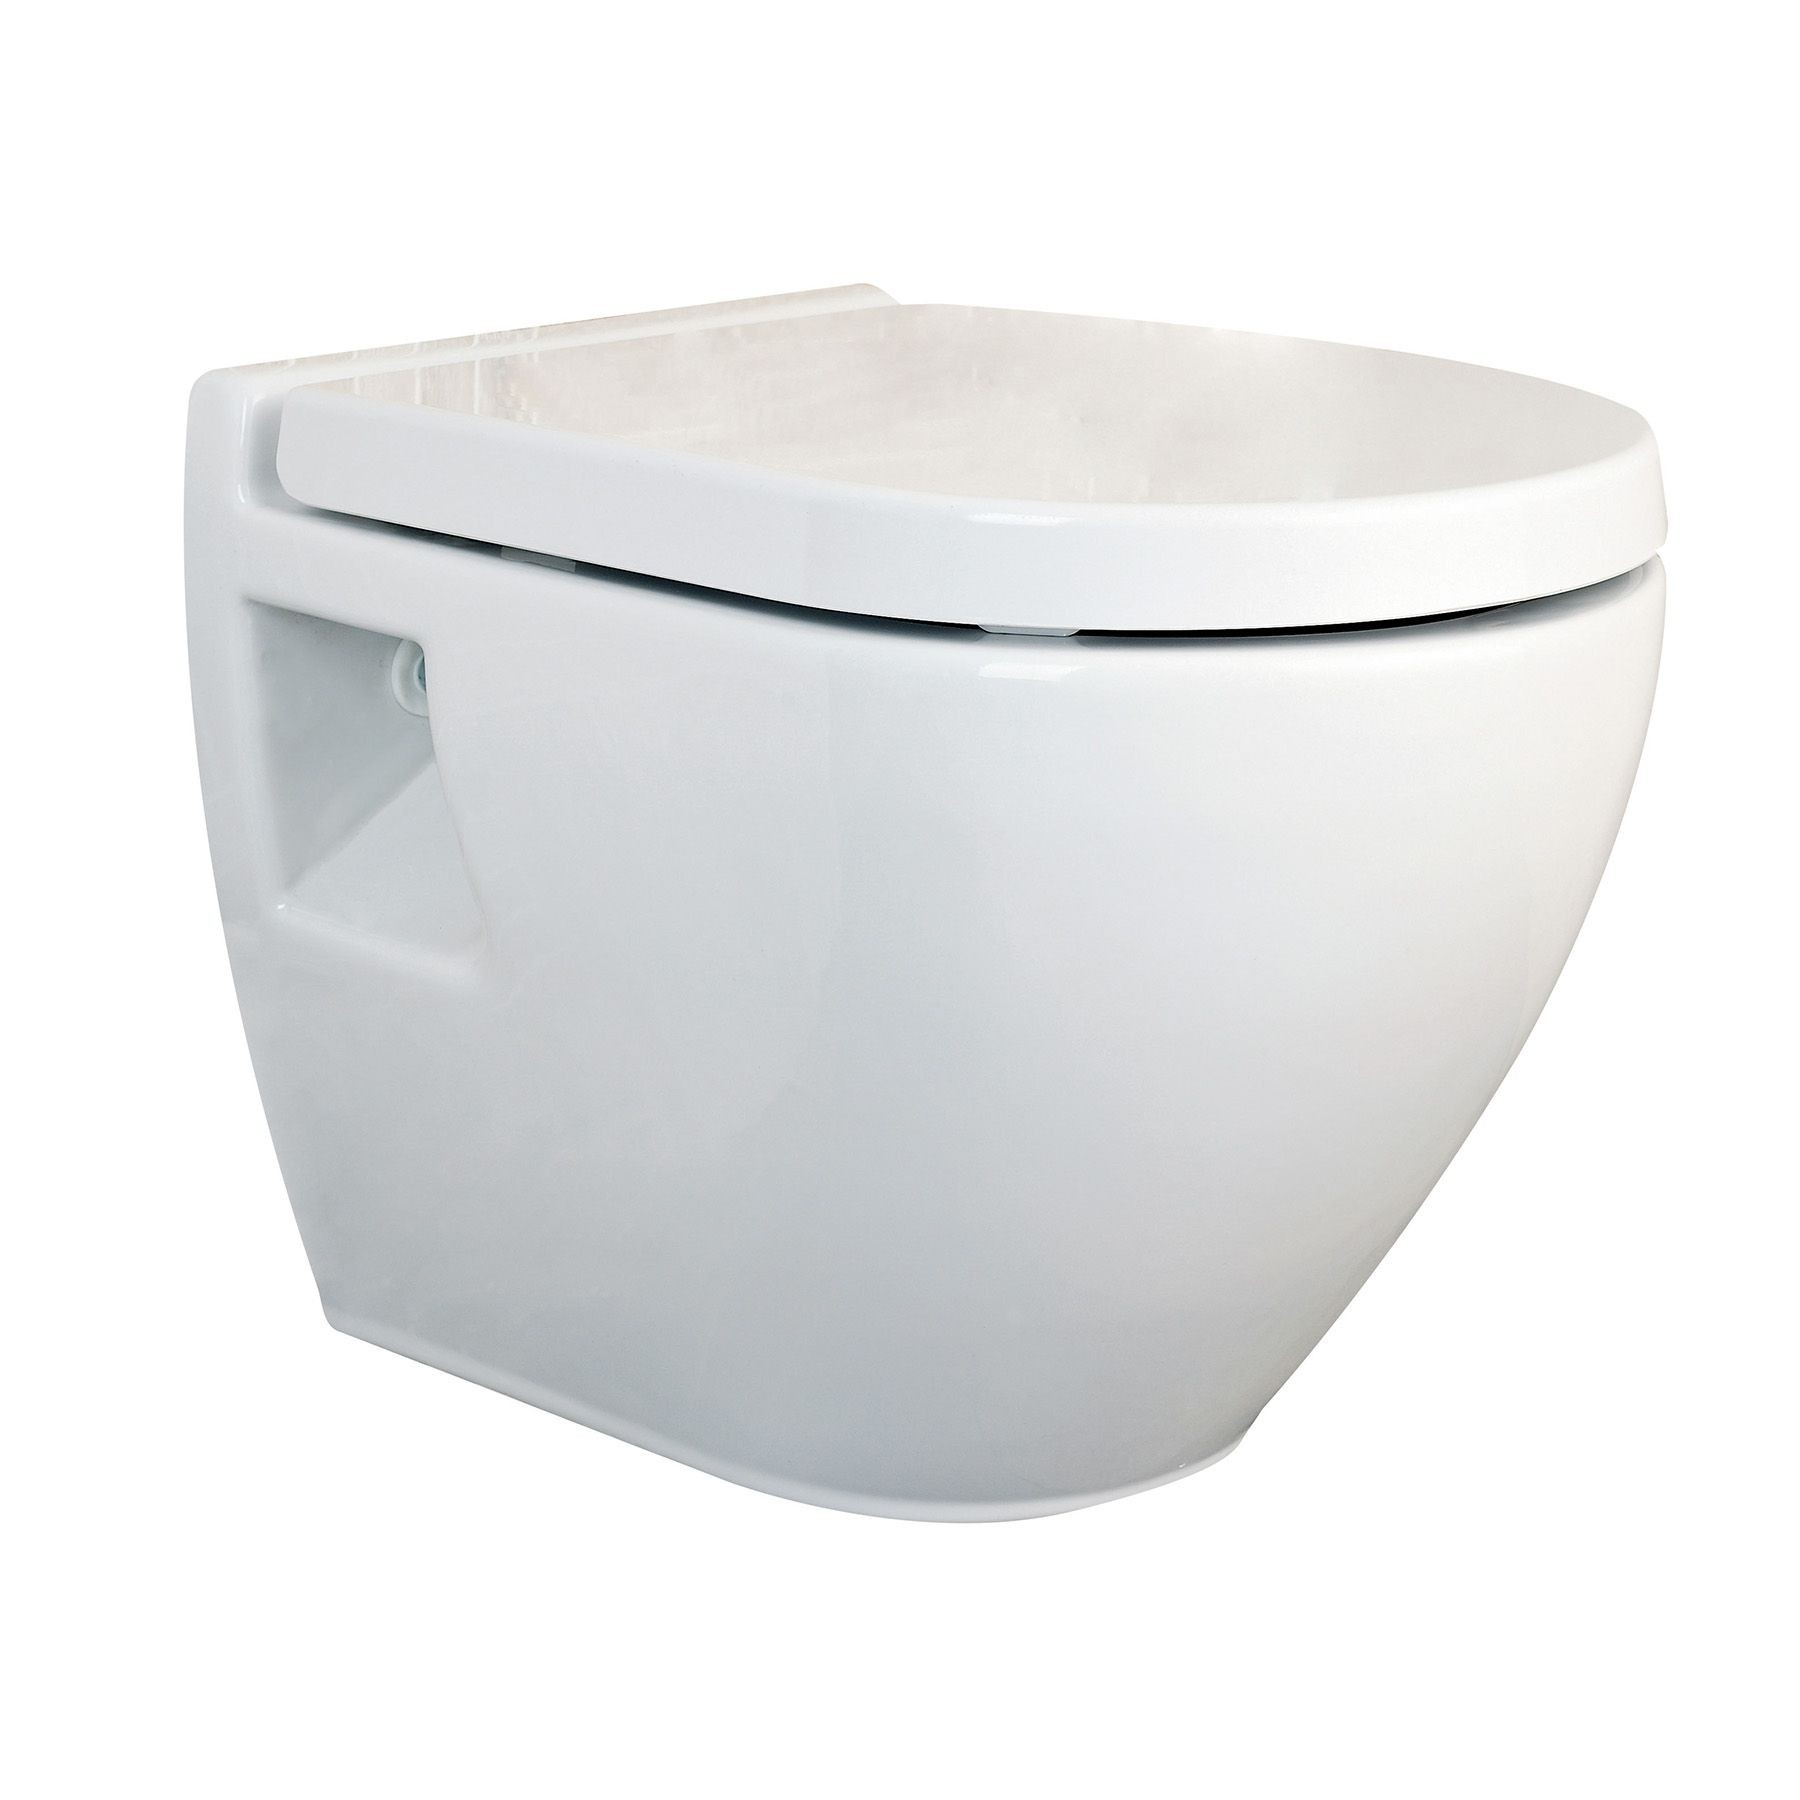 How a wall Mounted Toilet is Best for your Bathroom?